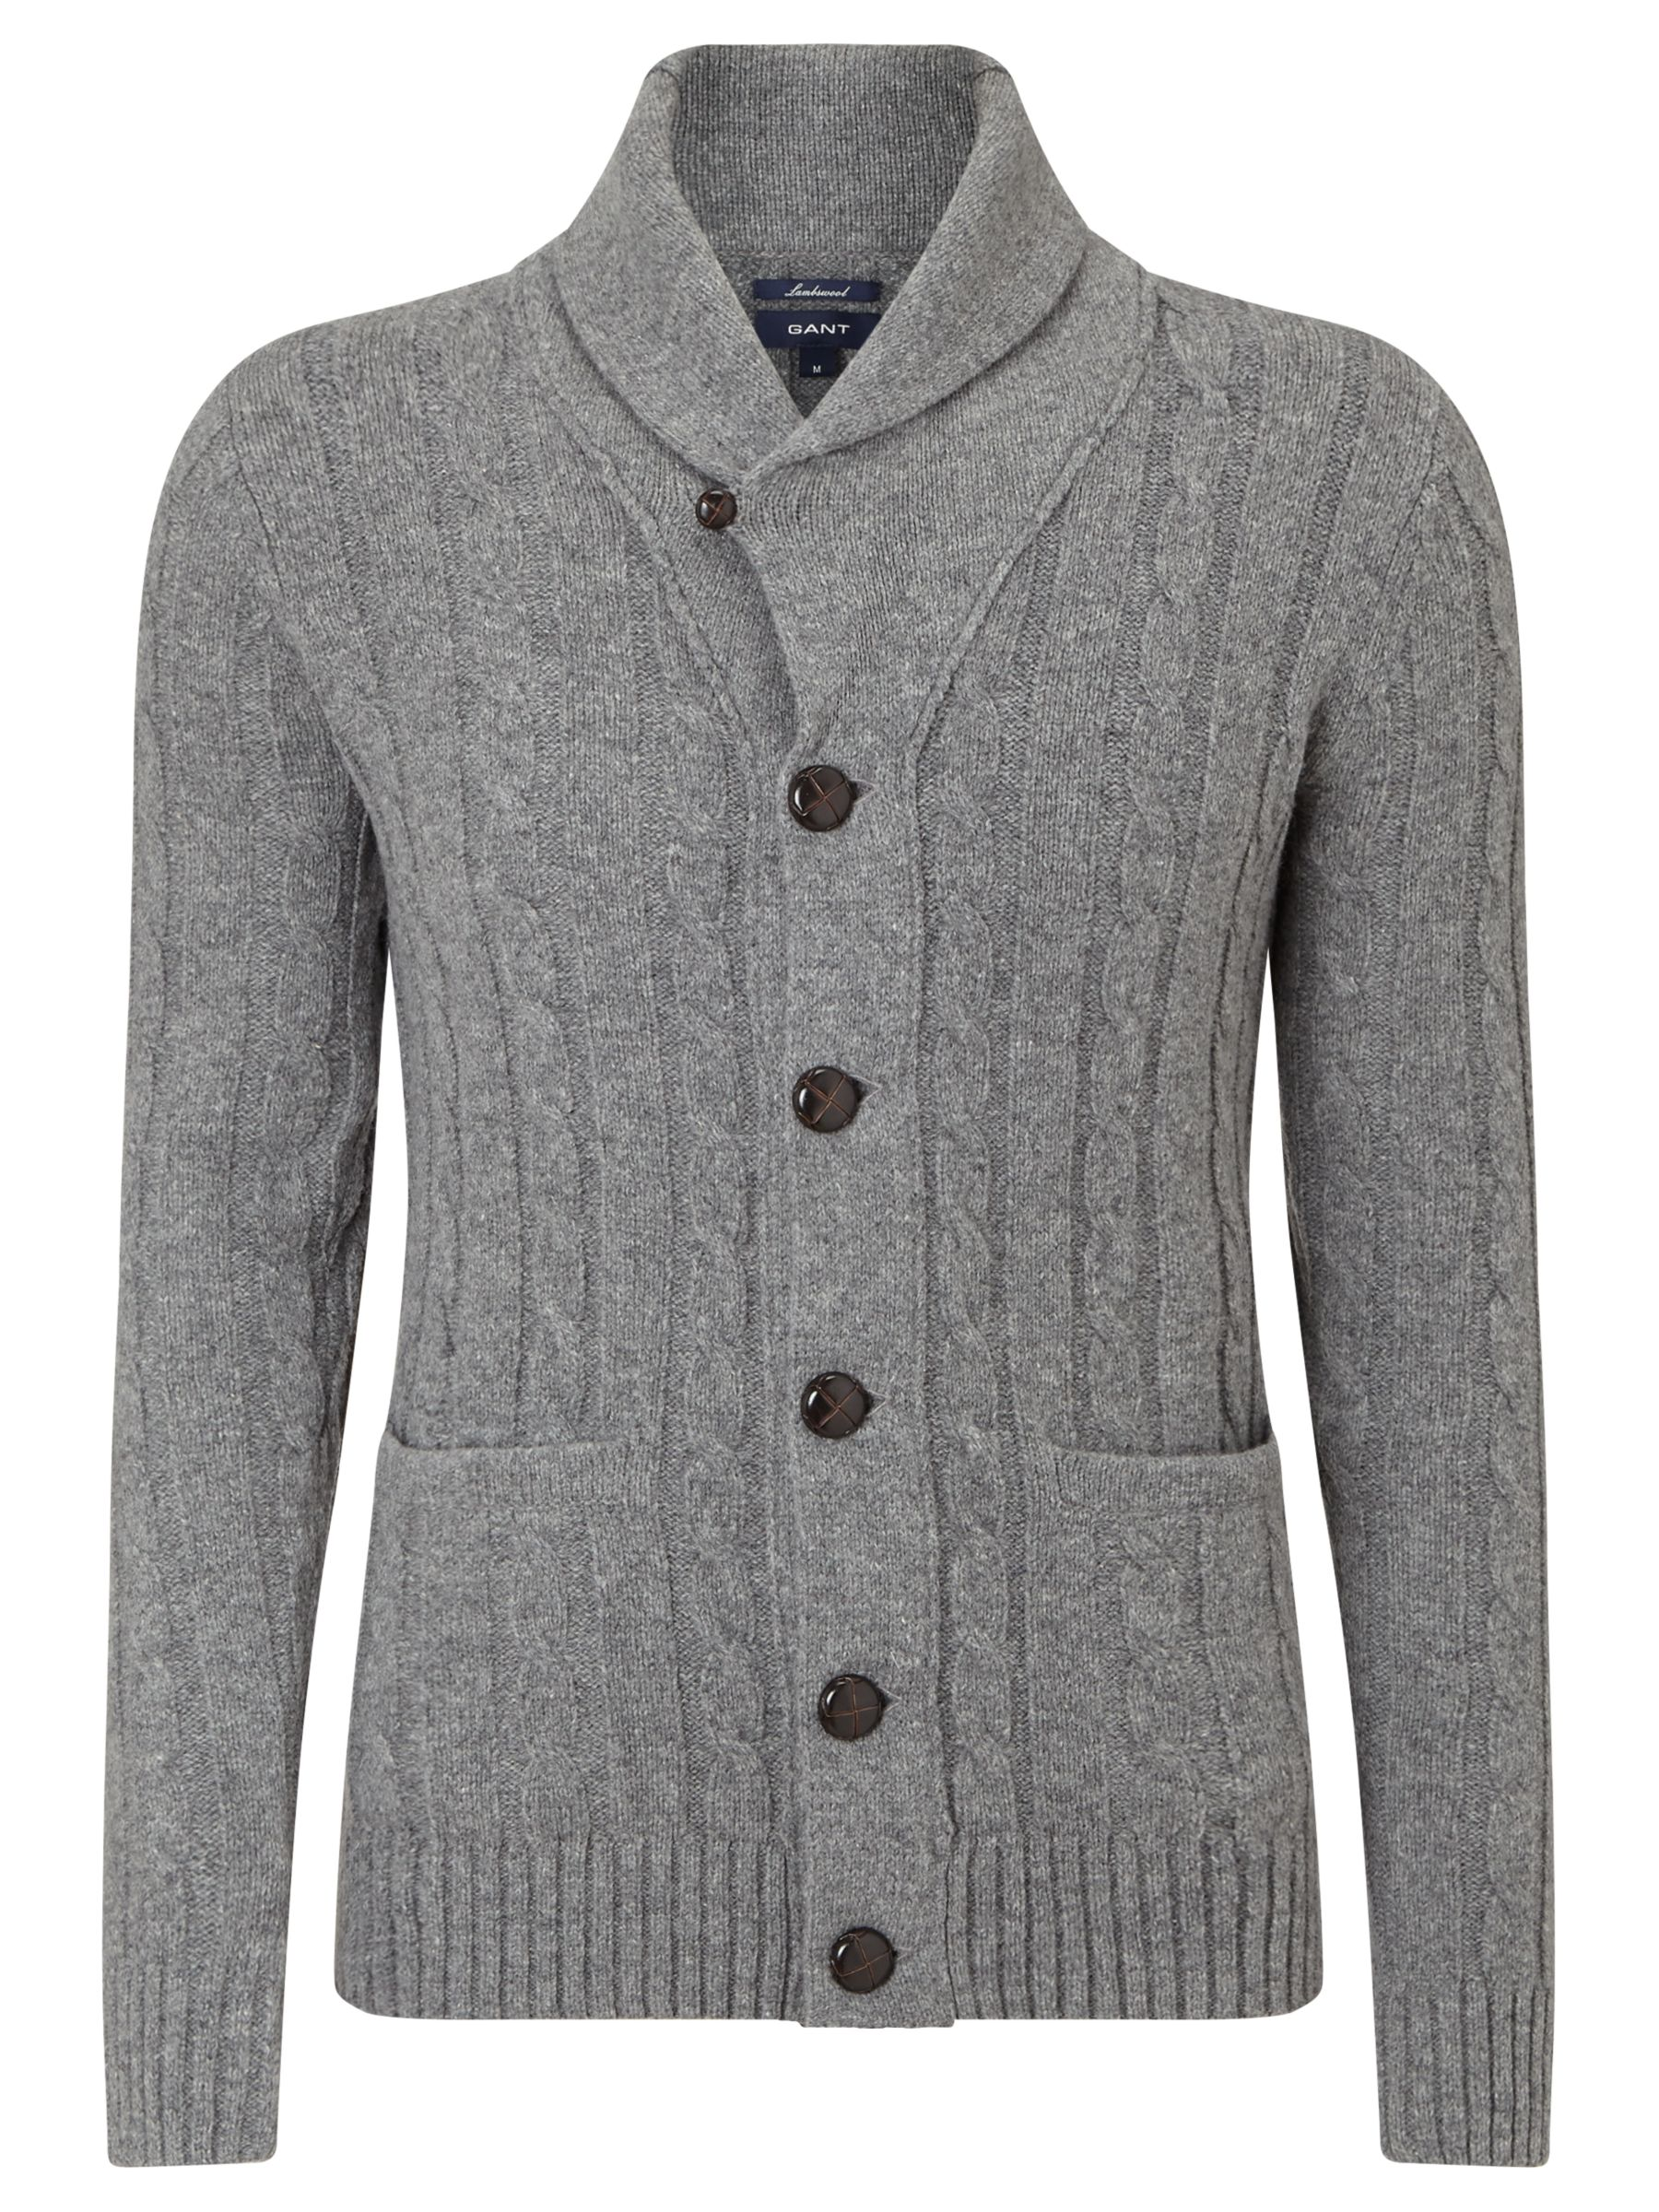 0f1efbf0f09 Gant Lambswool Cable Knit Cardigan at John Lewis & Partners